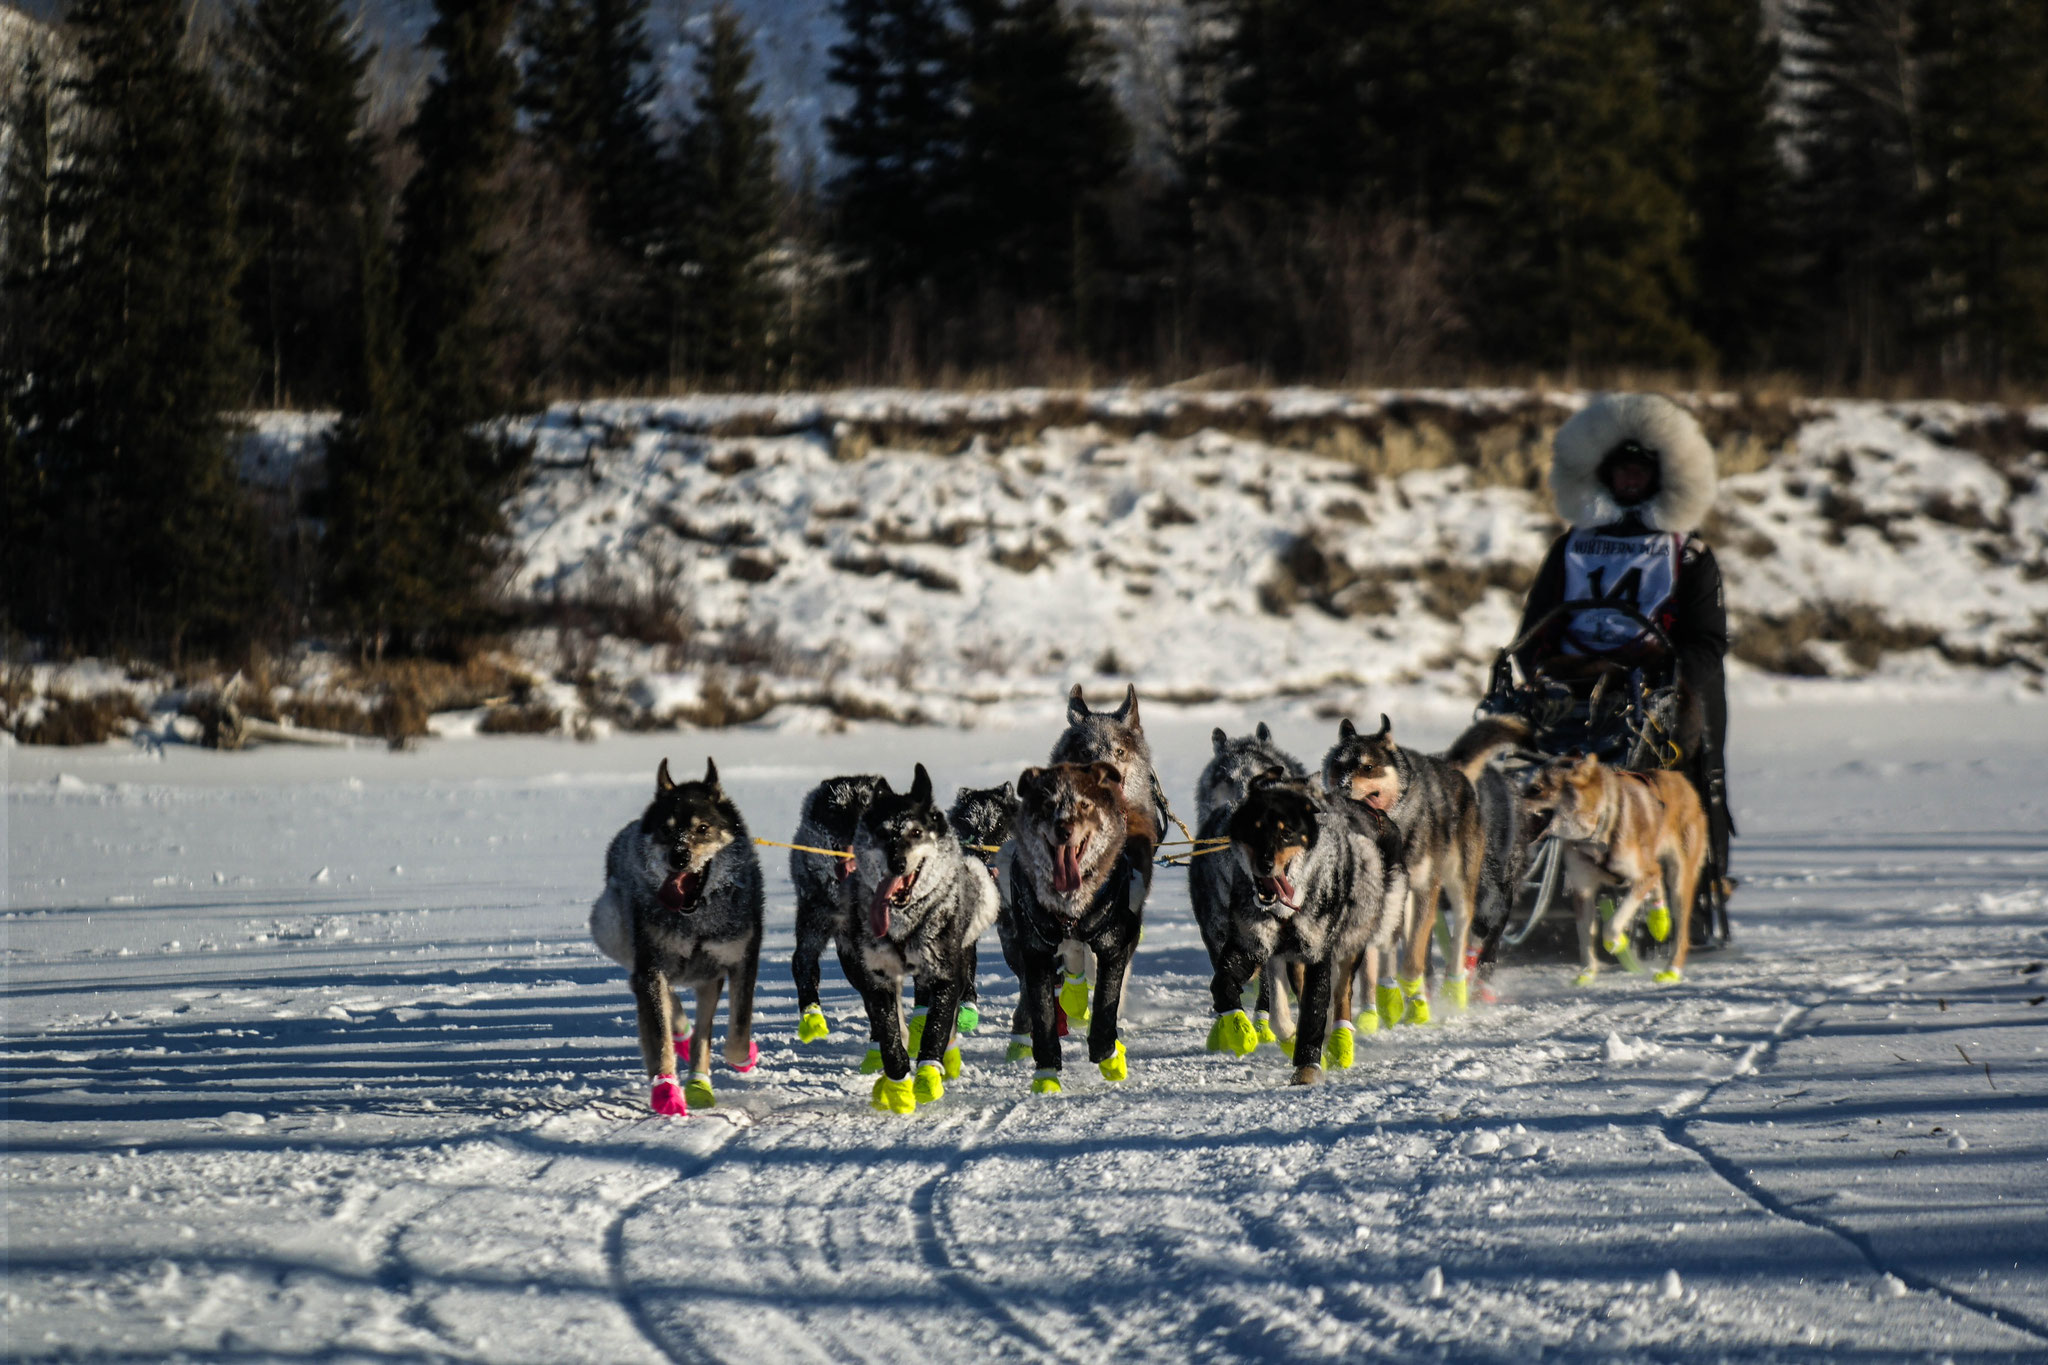 The first dog sled team to pass me!